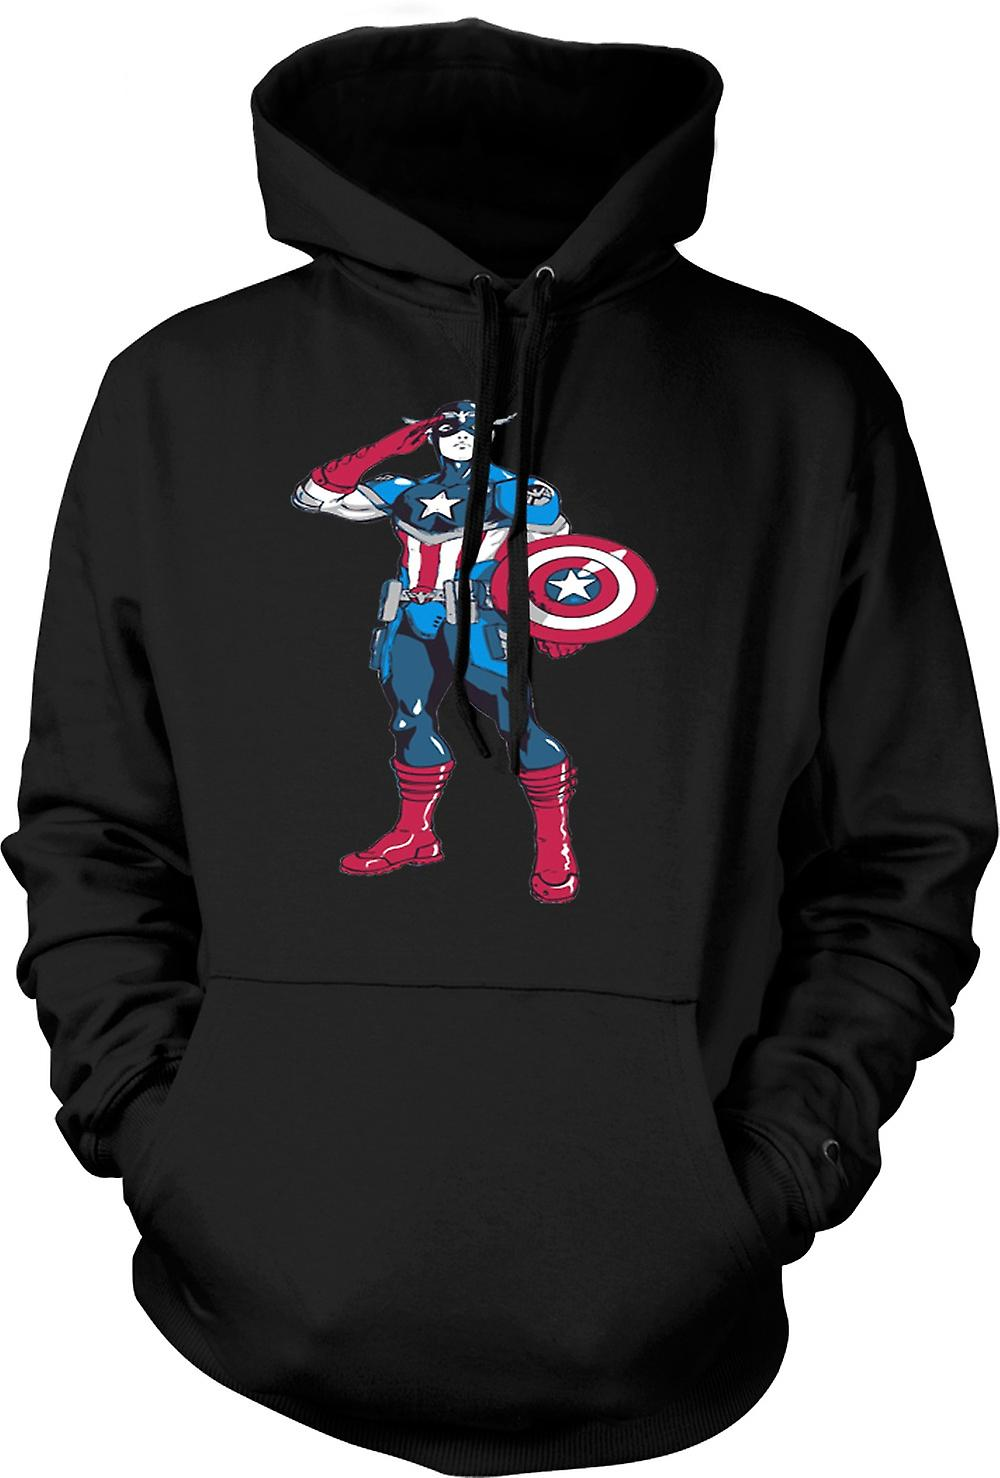 Kids Hoodie - Captain America Superhero - Sketch